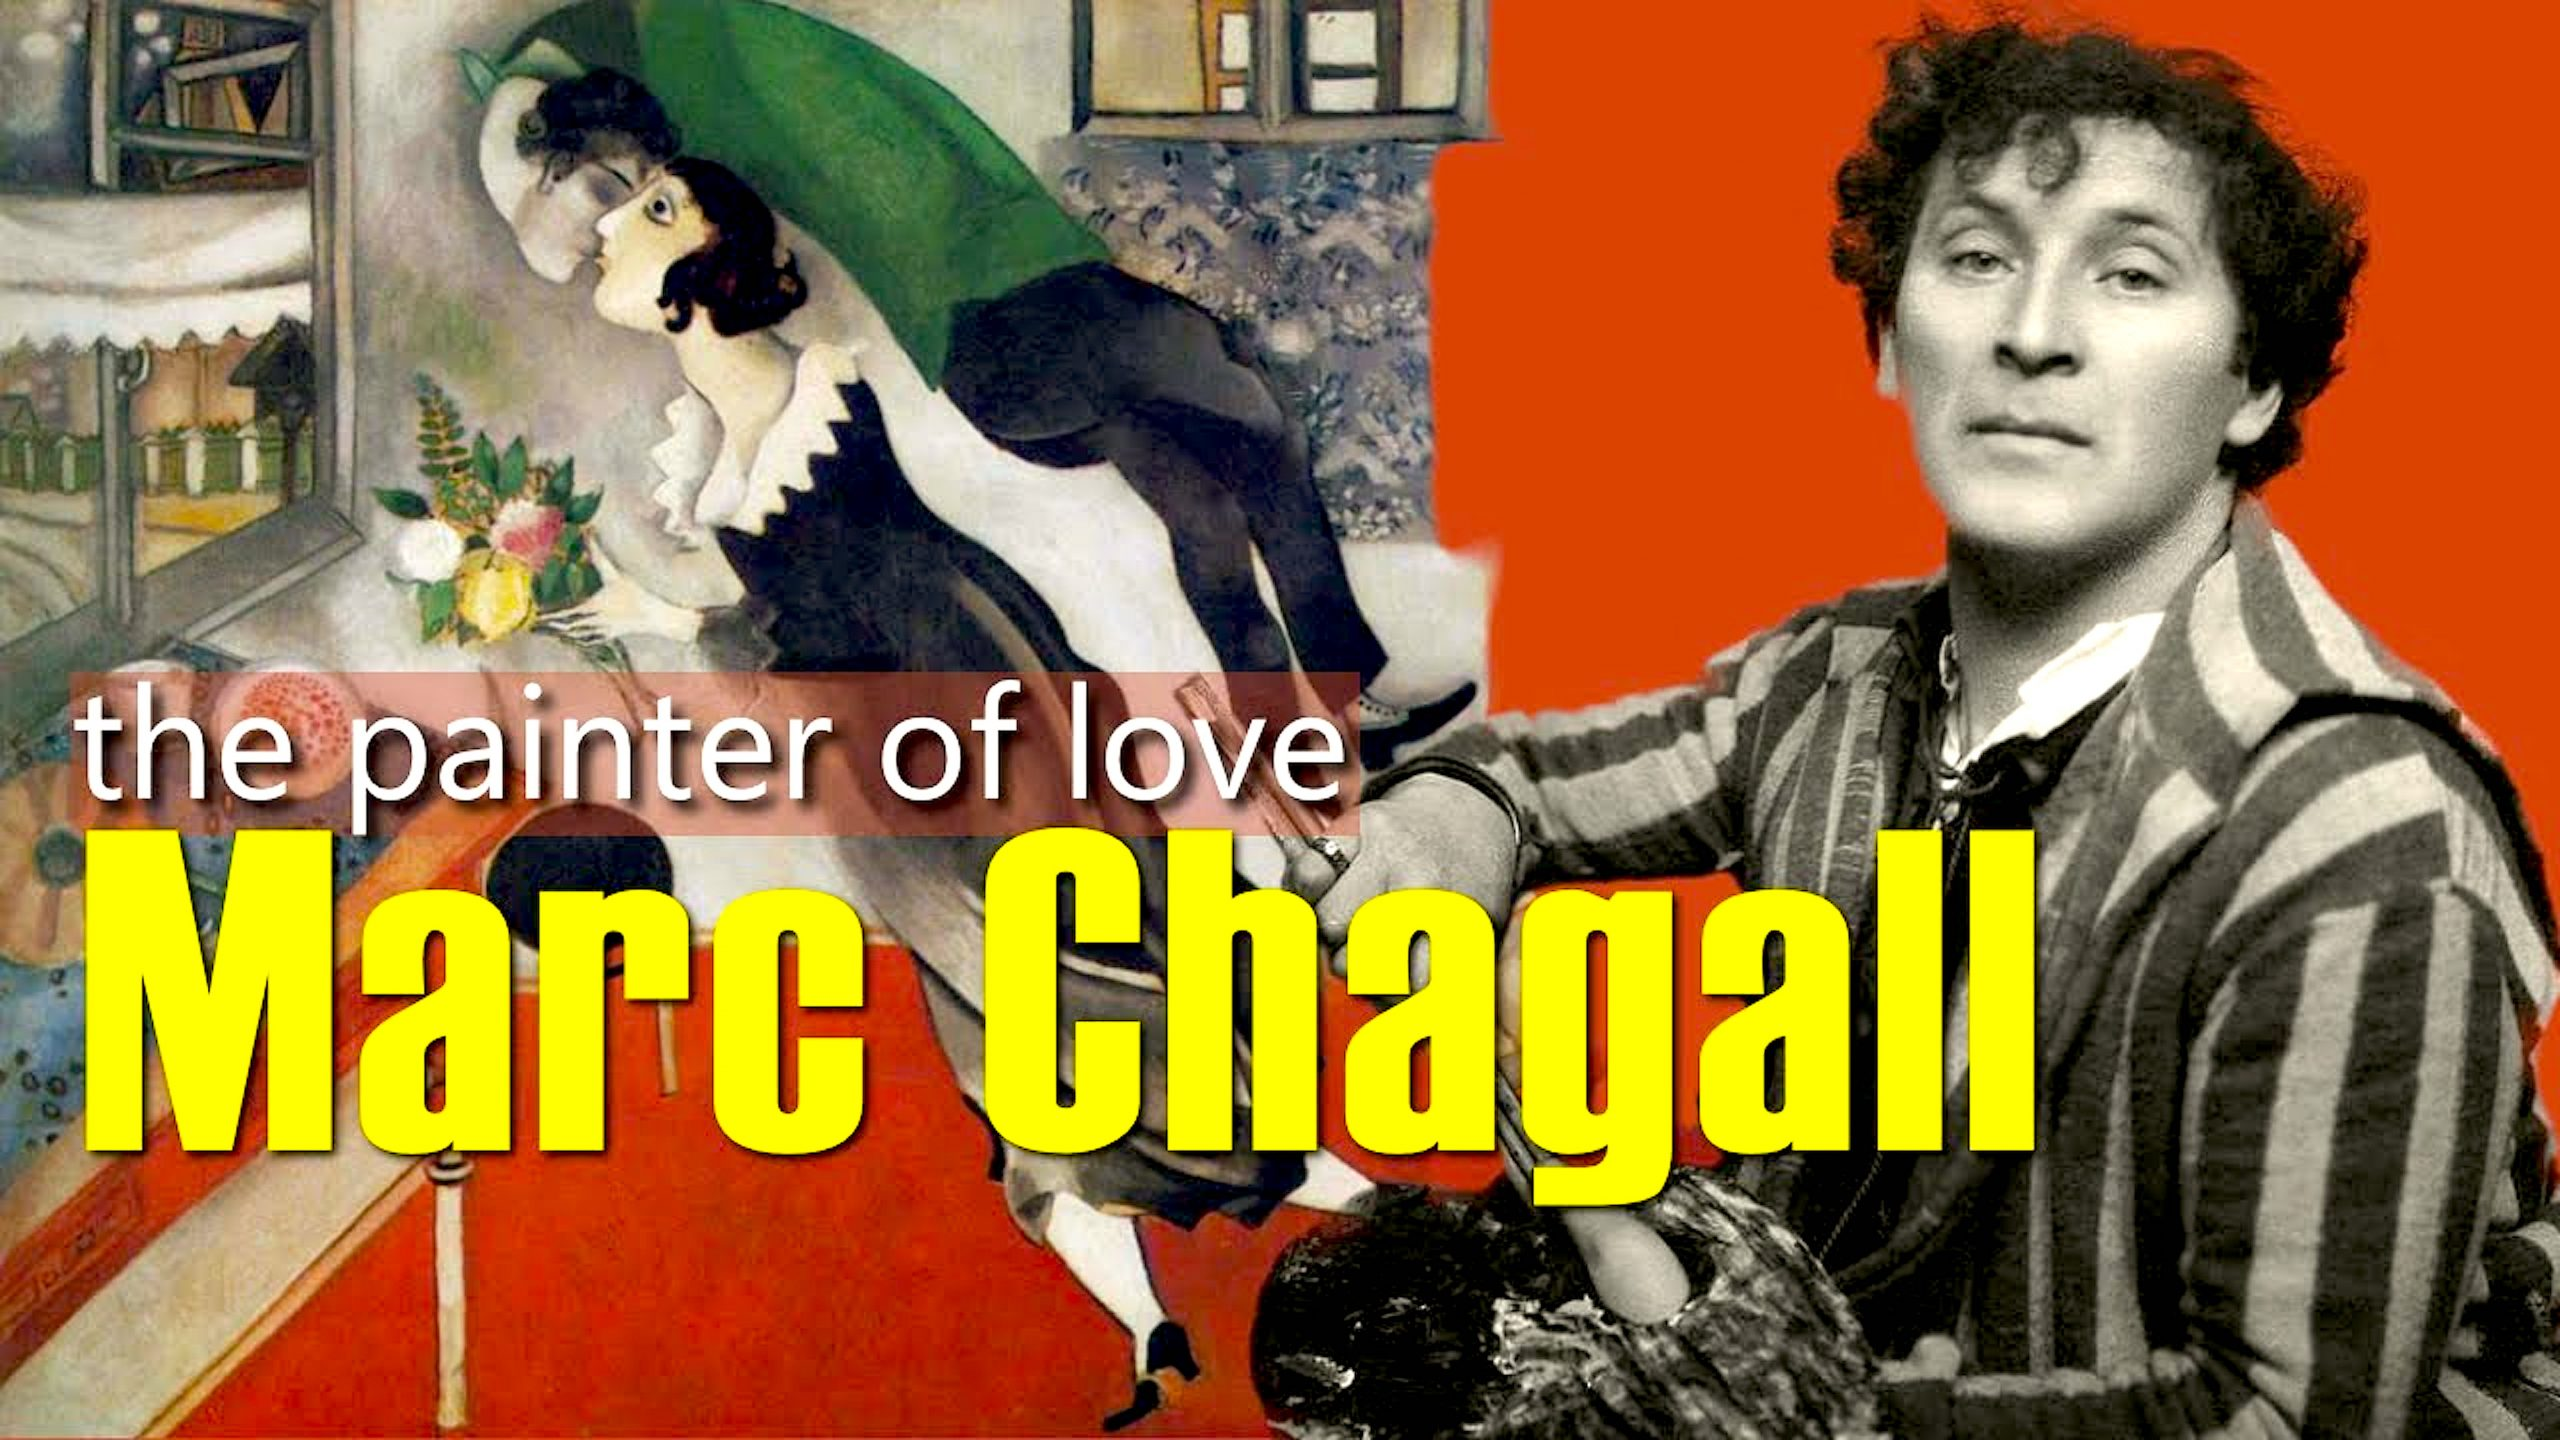 Marc Chagall Painter of Love (YouTube)